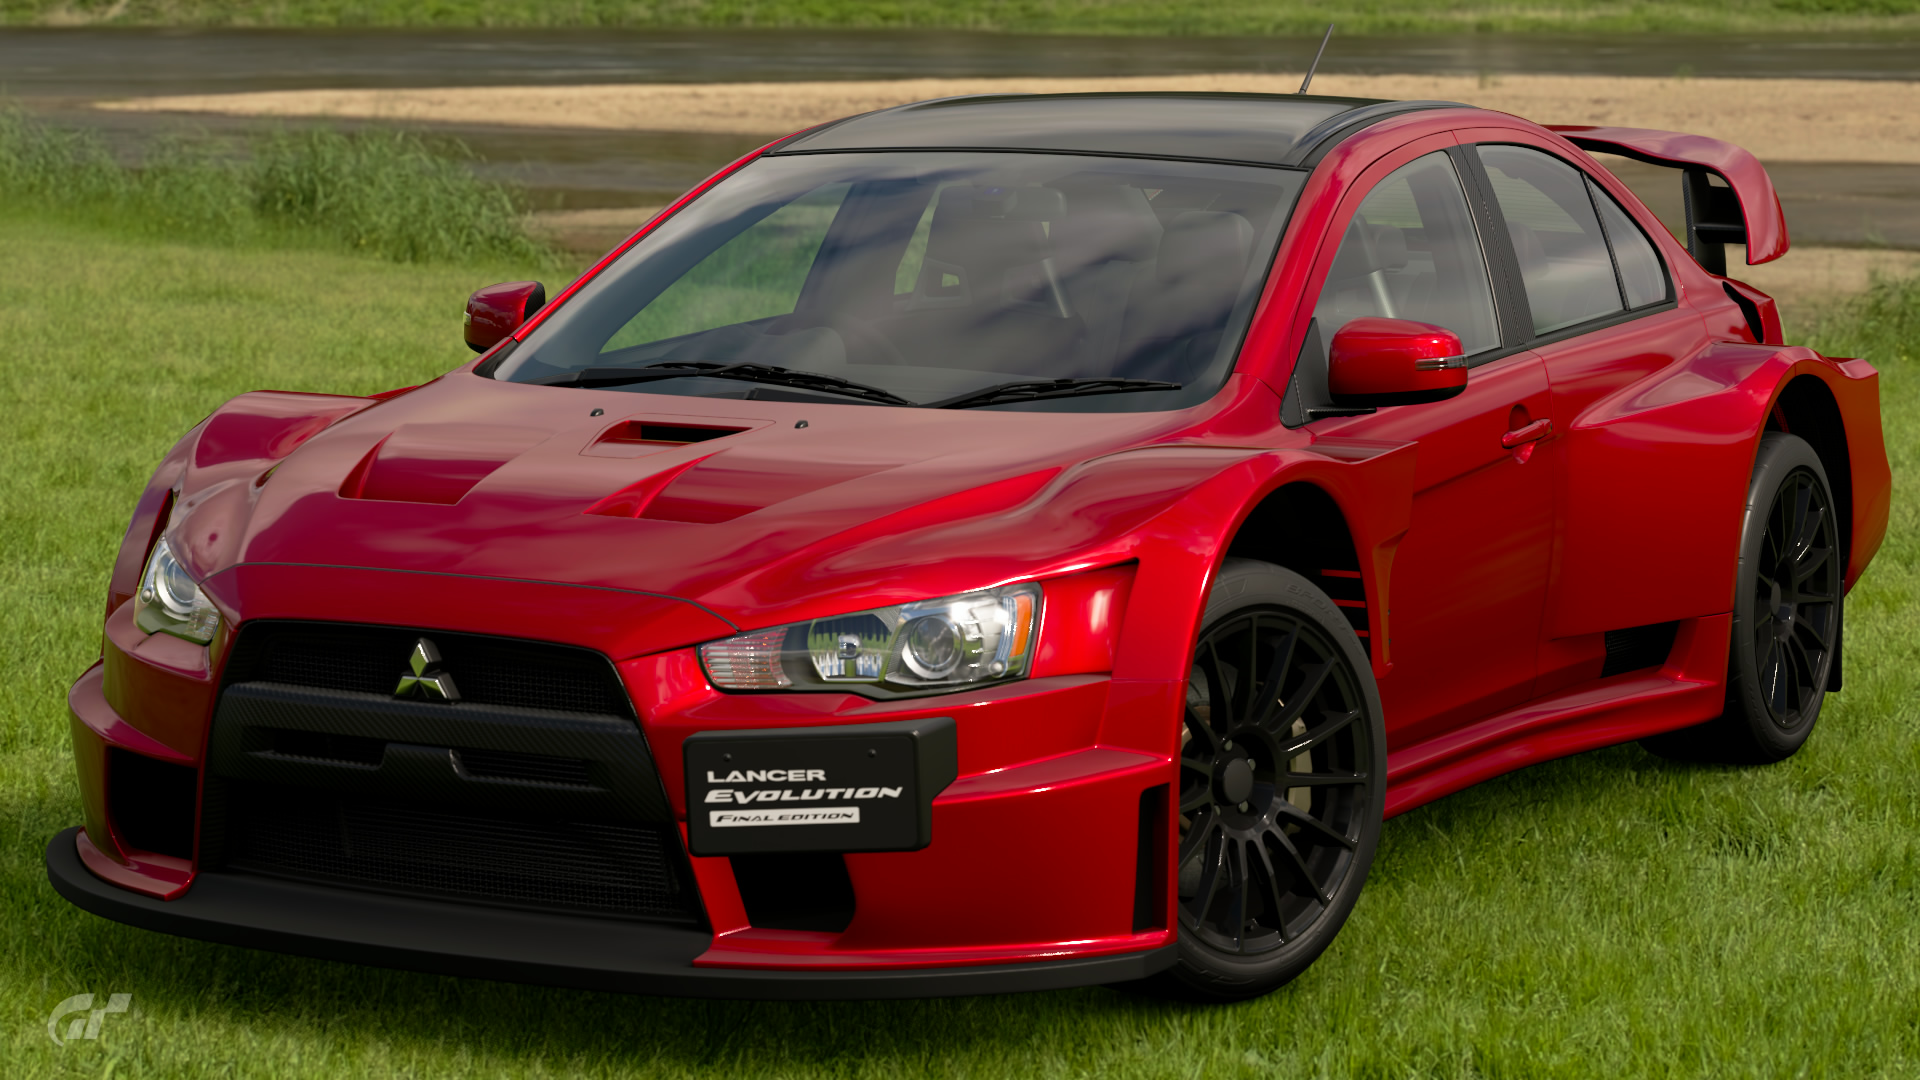 https://vignette.wikia.nocookie.net/gran-turismo/images/d/d5/Mitsubishi_Lancer_Evolution_Final_Edition_Gr.B_Road_Car.jpg/revision/latest?cb=20171207135517